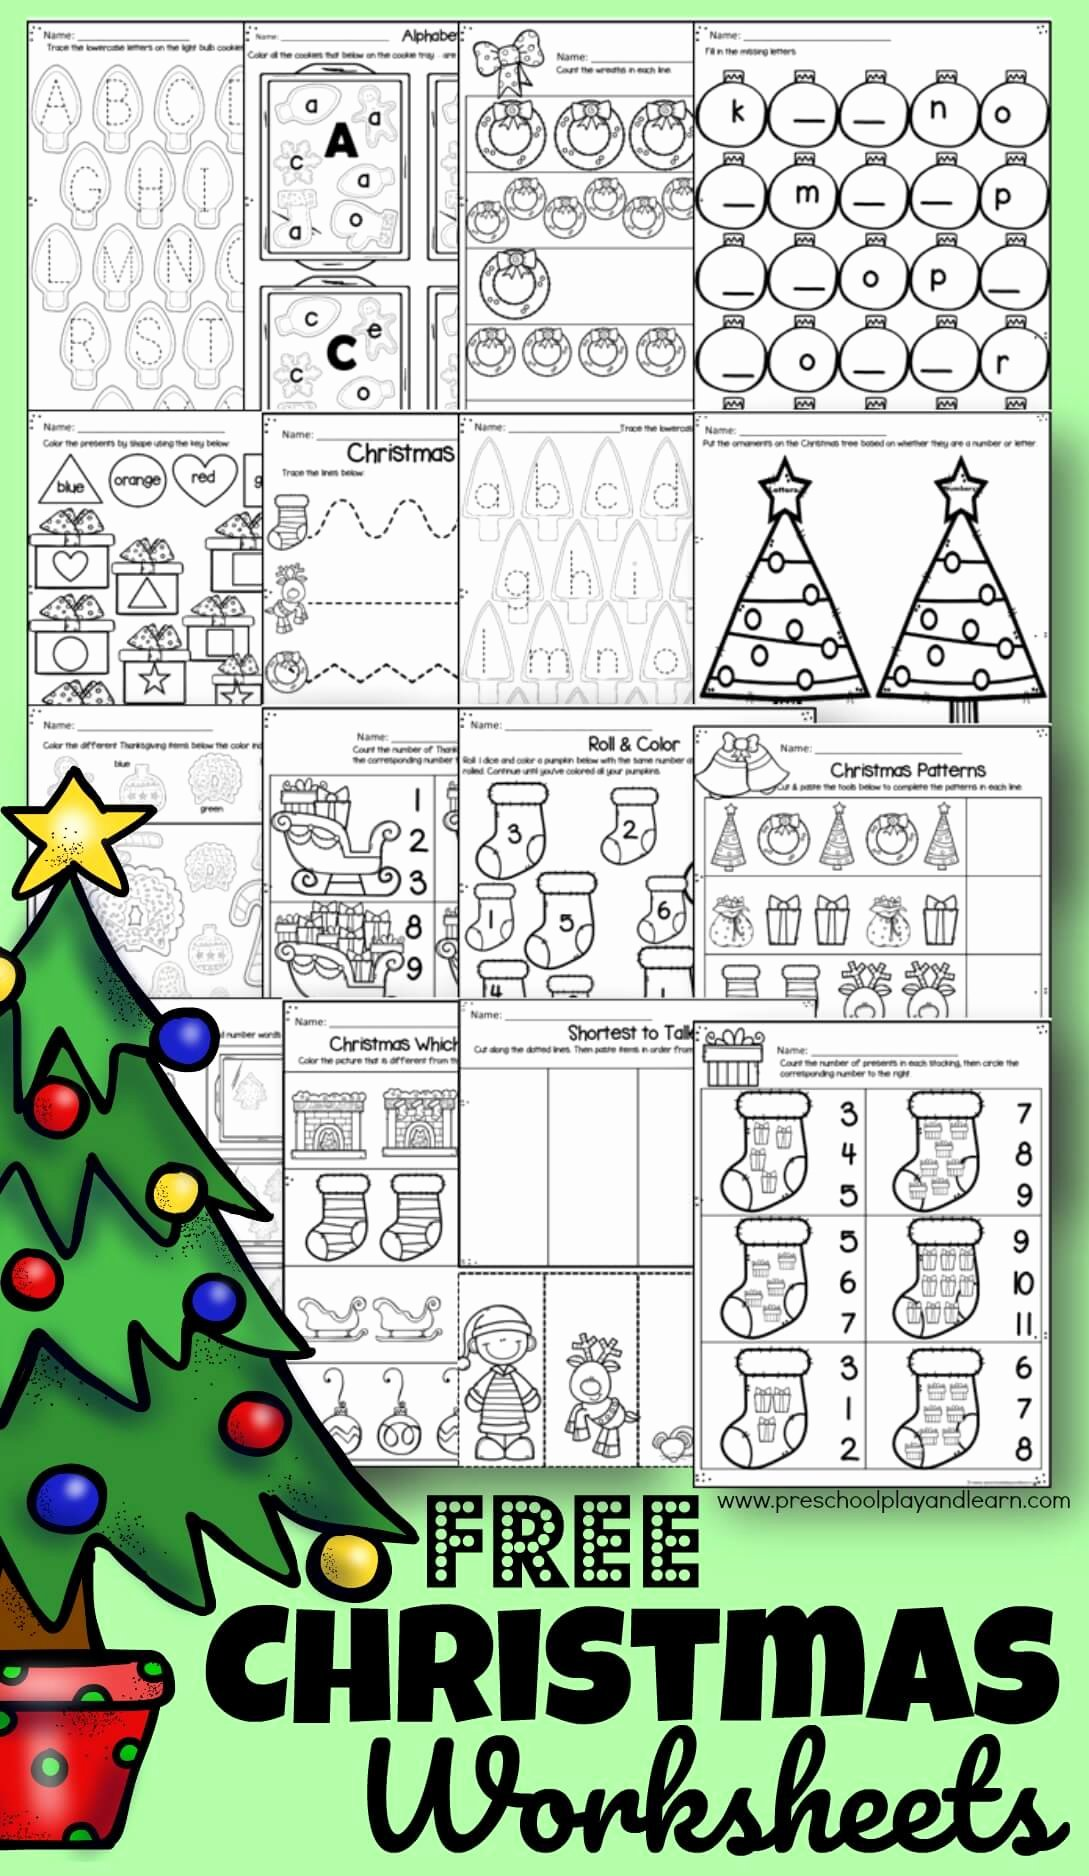 Christmas Worksheets for Preschoolers Printables top Free Christmas Worksheets for Preschoolers